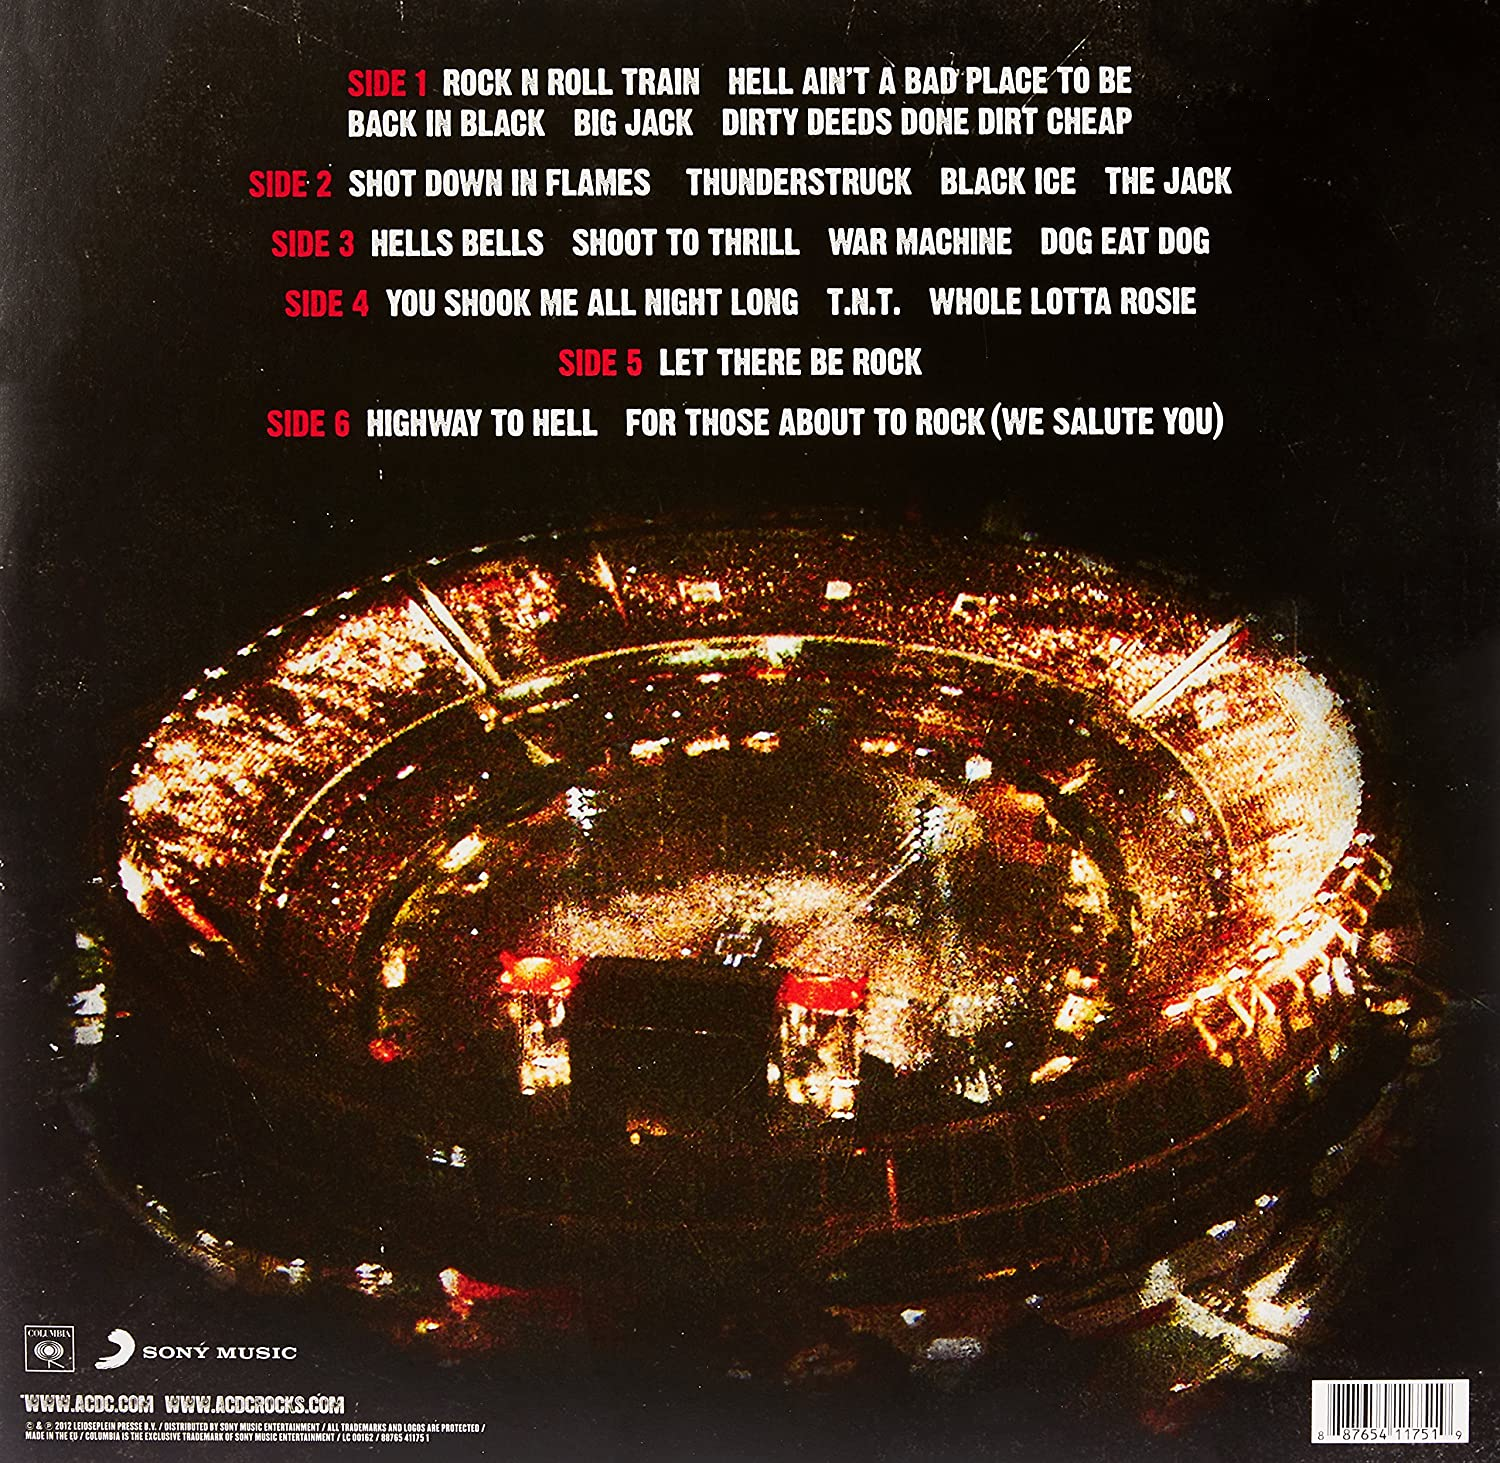 Live At River Plate : Ac/Dc: Amazon.es: Música